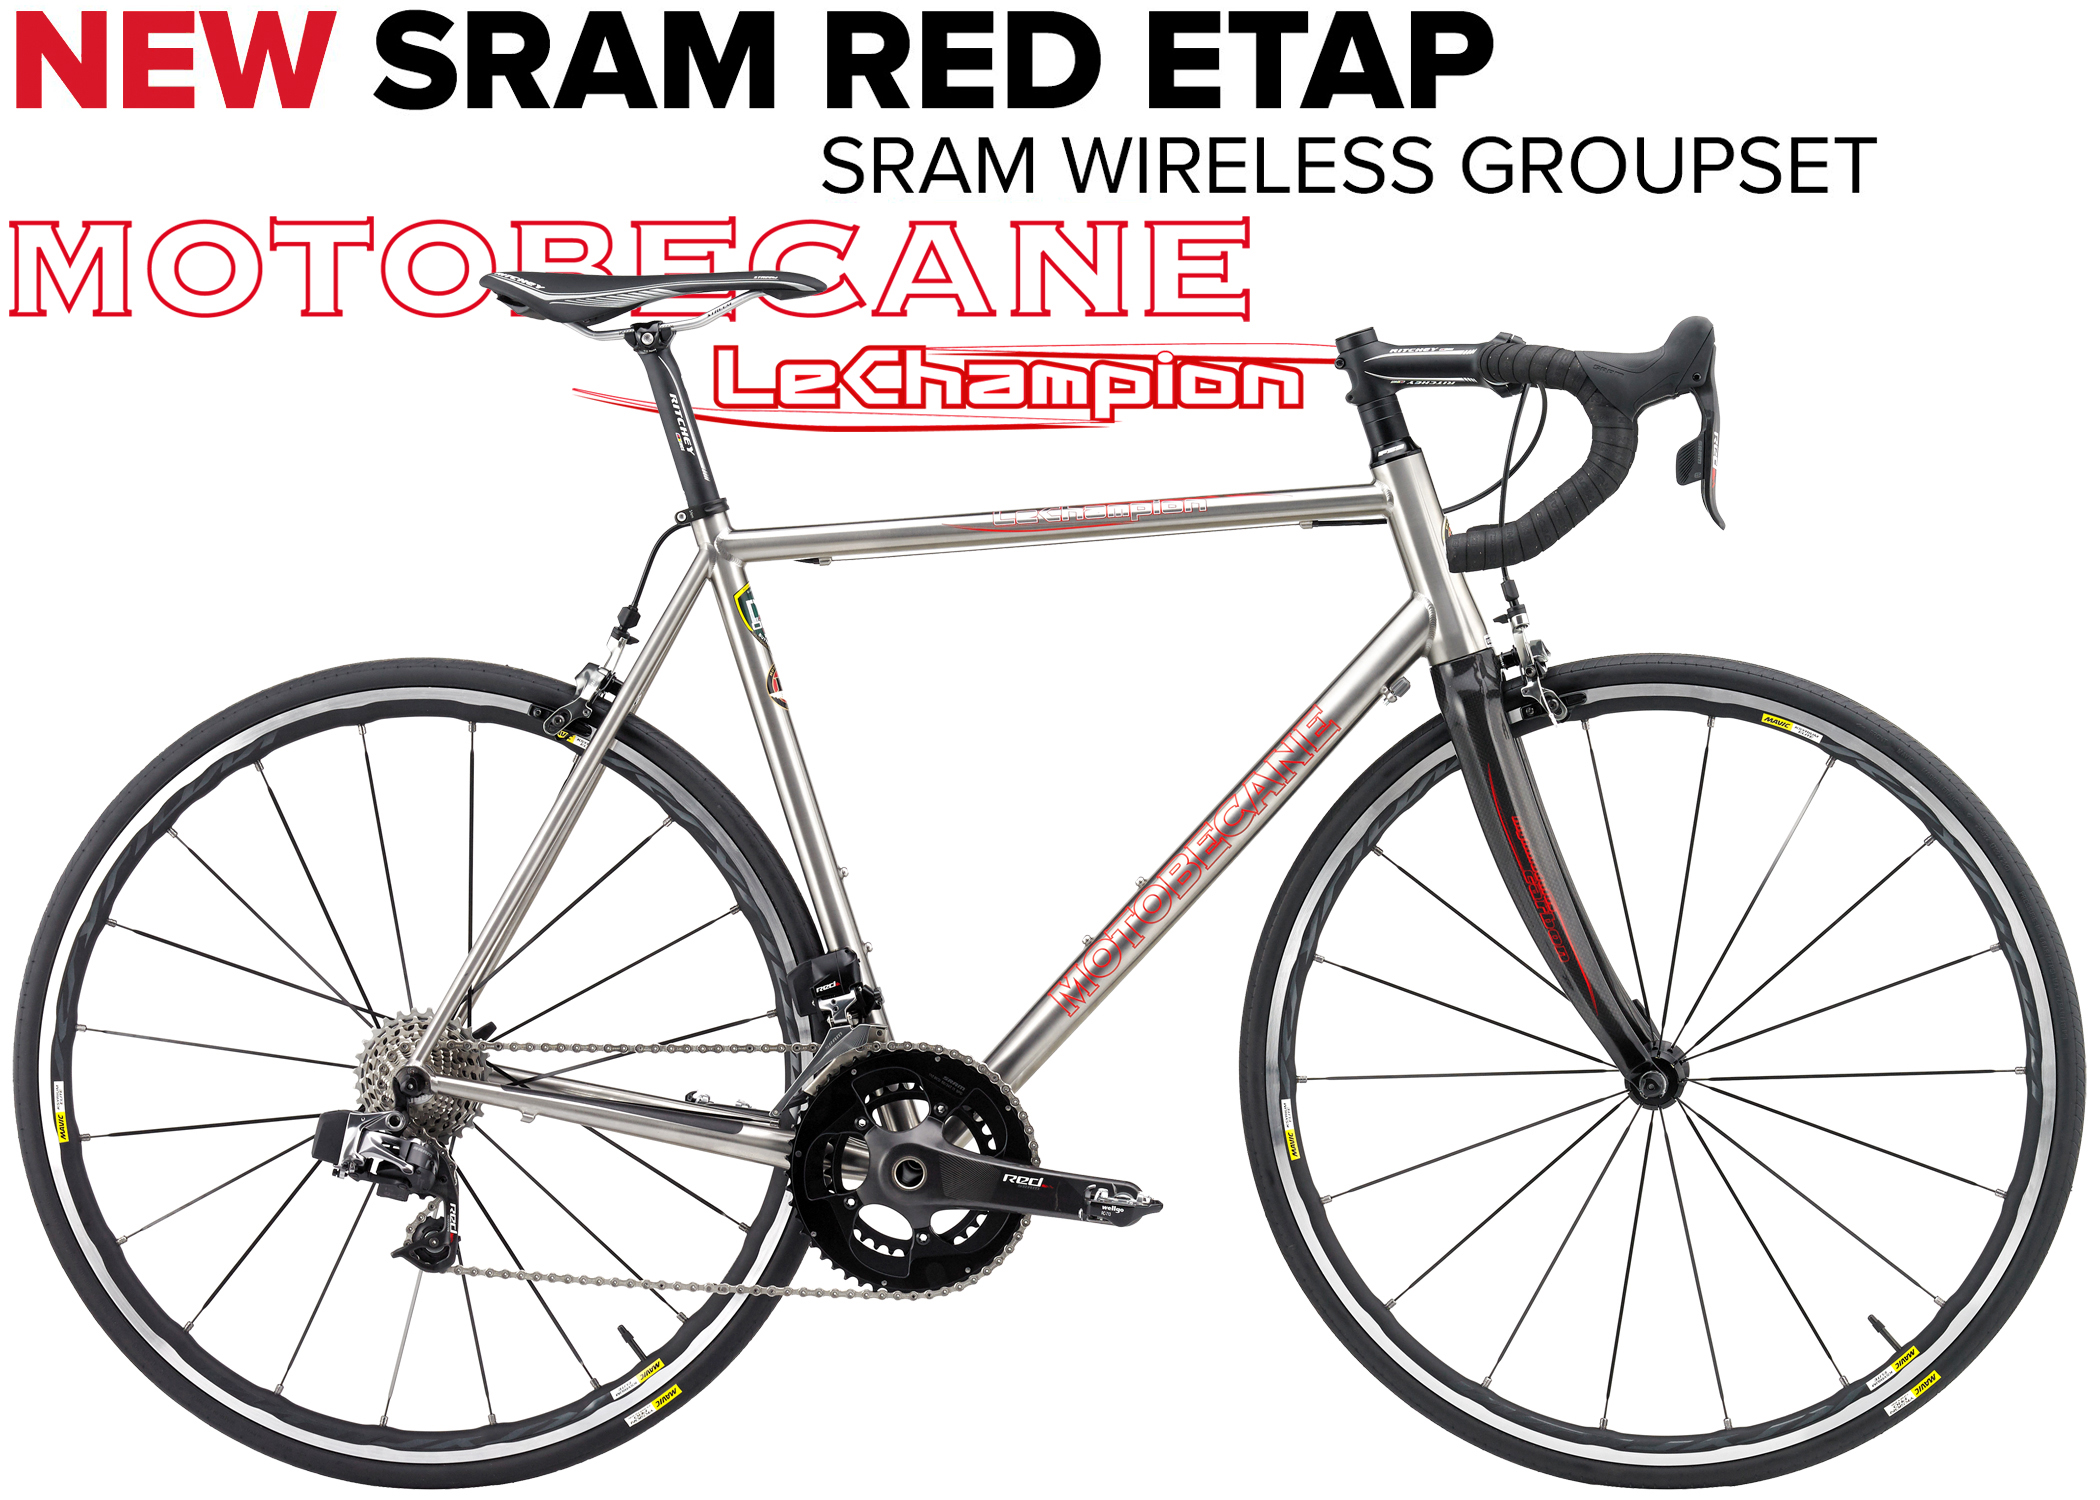 LeCHAMPION Ti INFERNO Ltd - SUPERLIGHT TITANIUM w/ SRAM RED eTAP SHIFTING